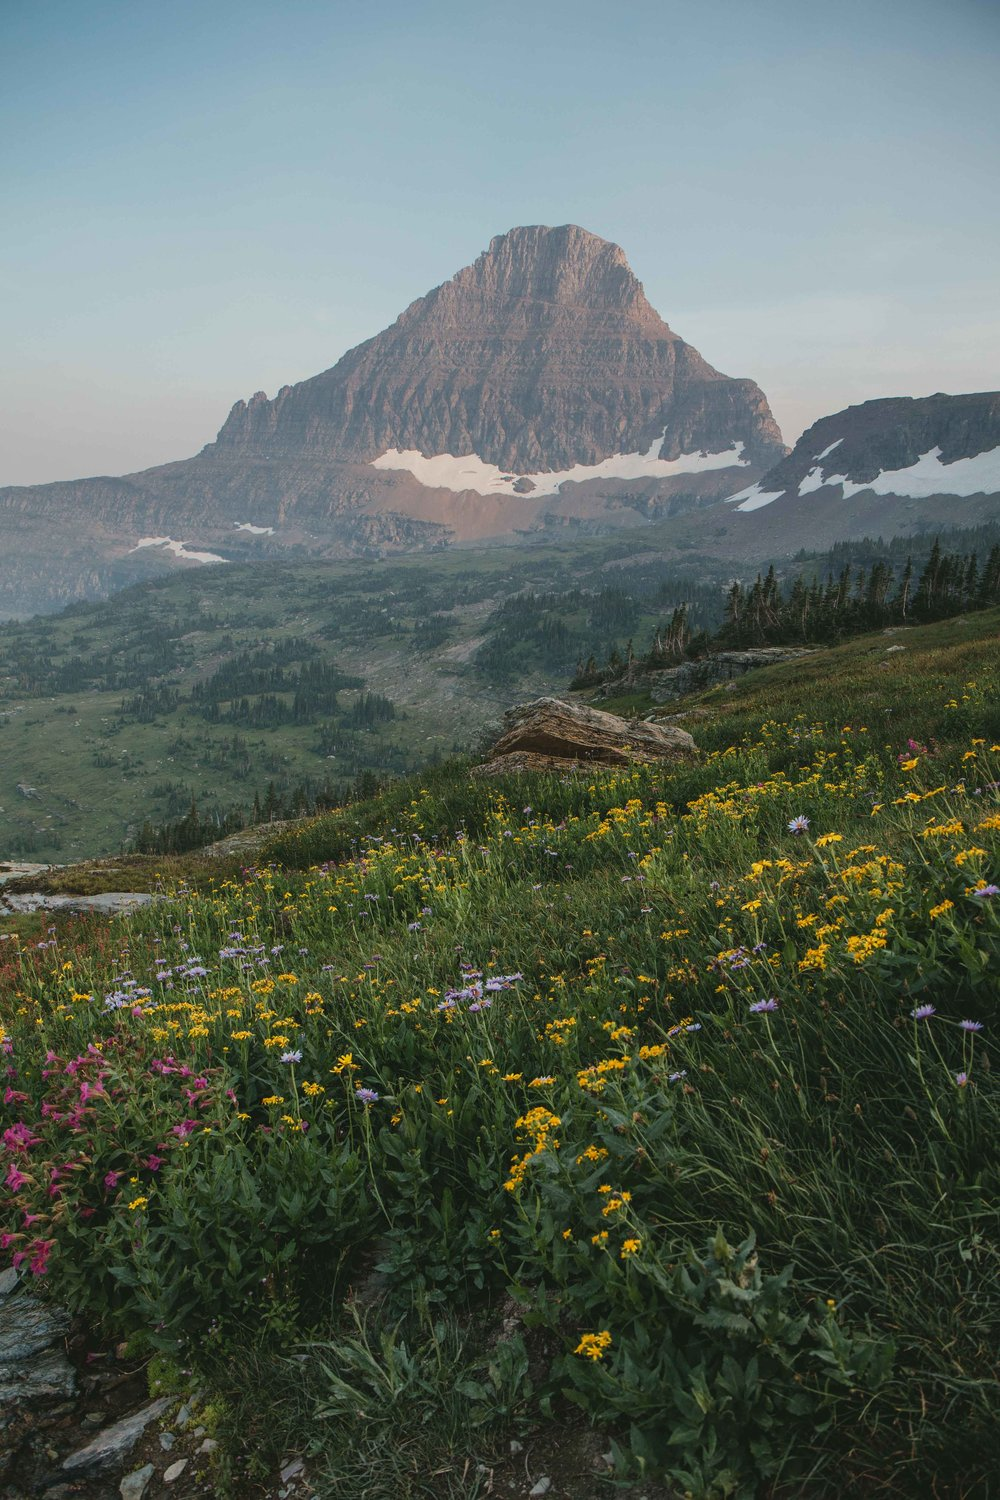 Logan Pass in Glacier National Park during fire season. One of the most beautiful national parks in Montana.